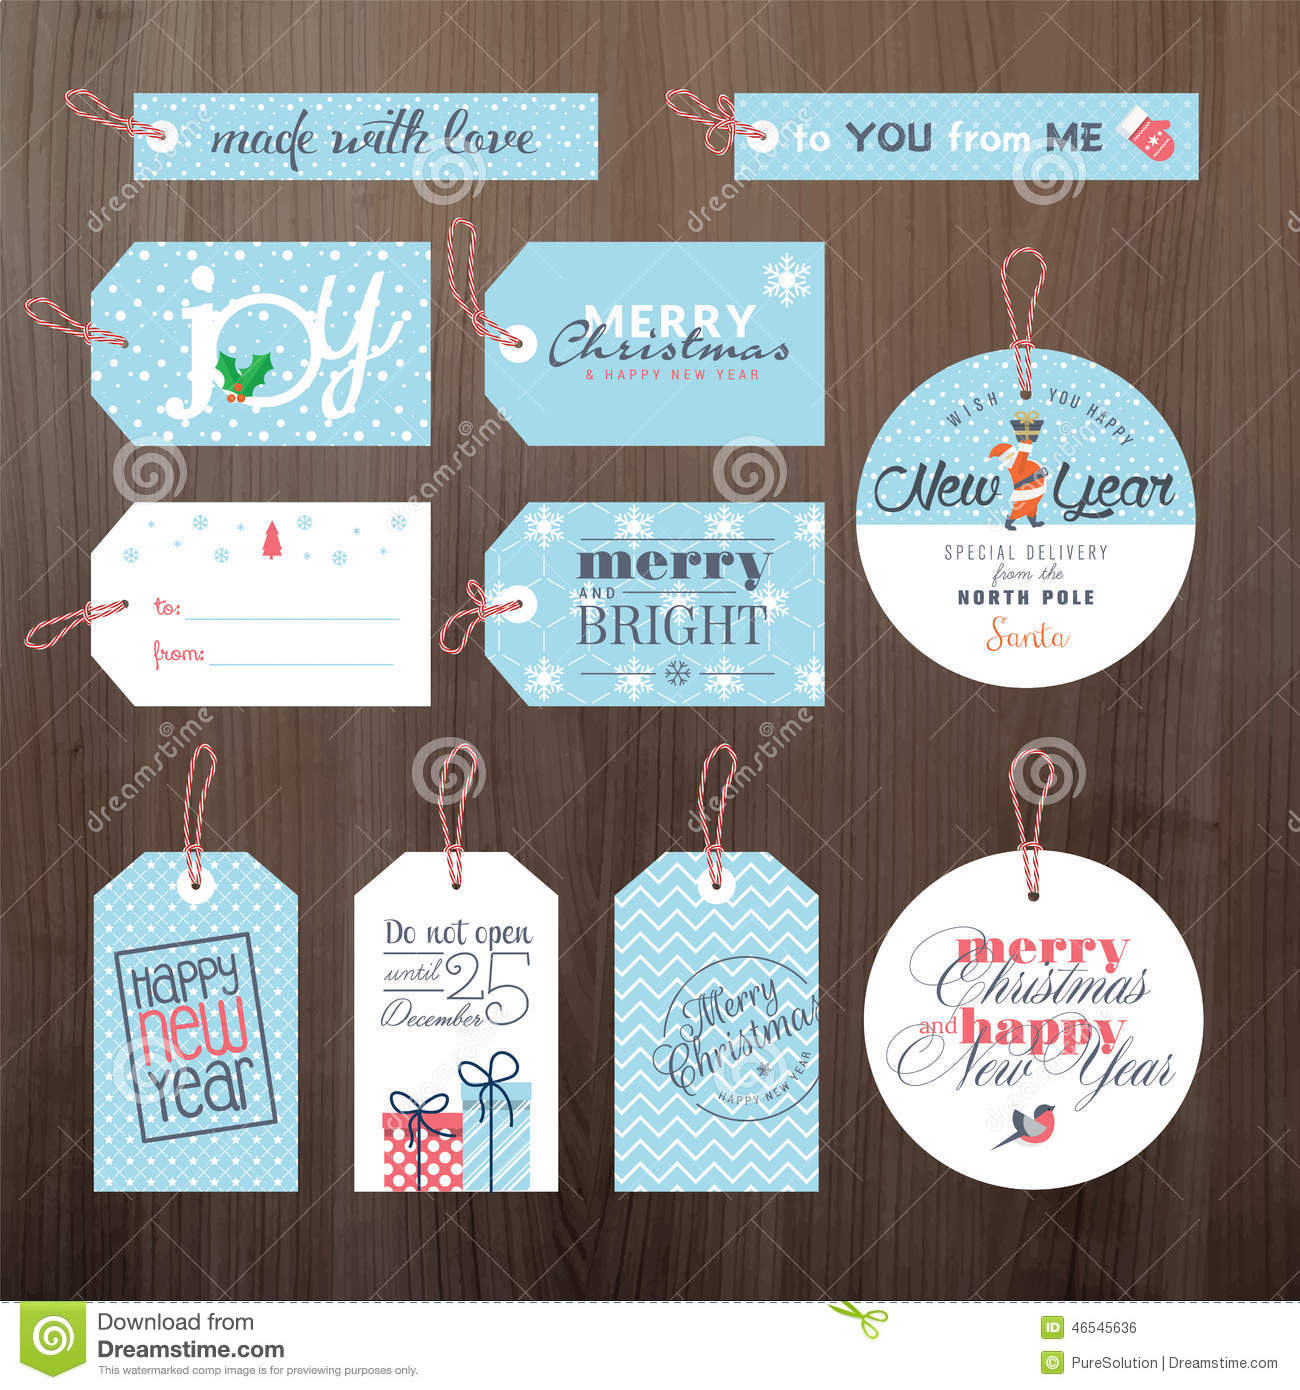 Christmas Tree Ornament Template